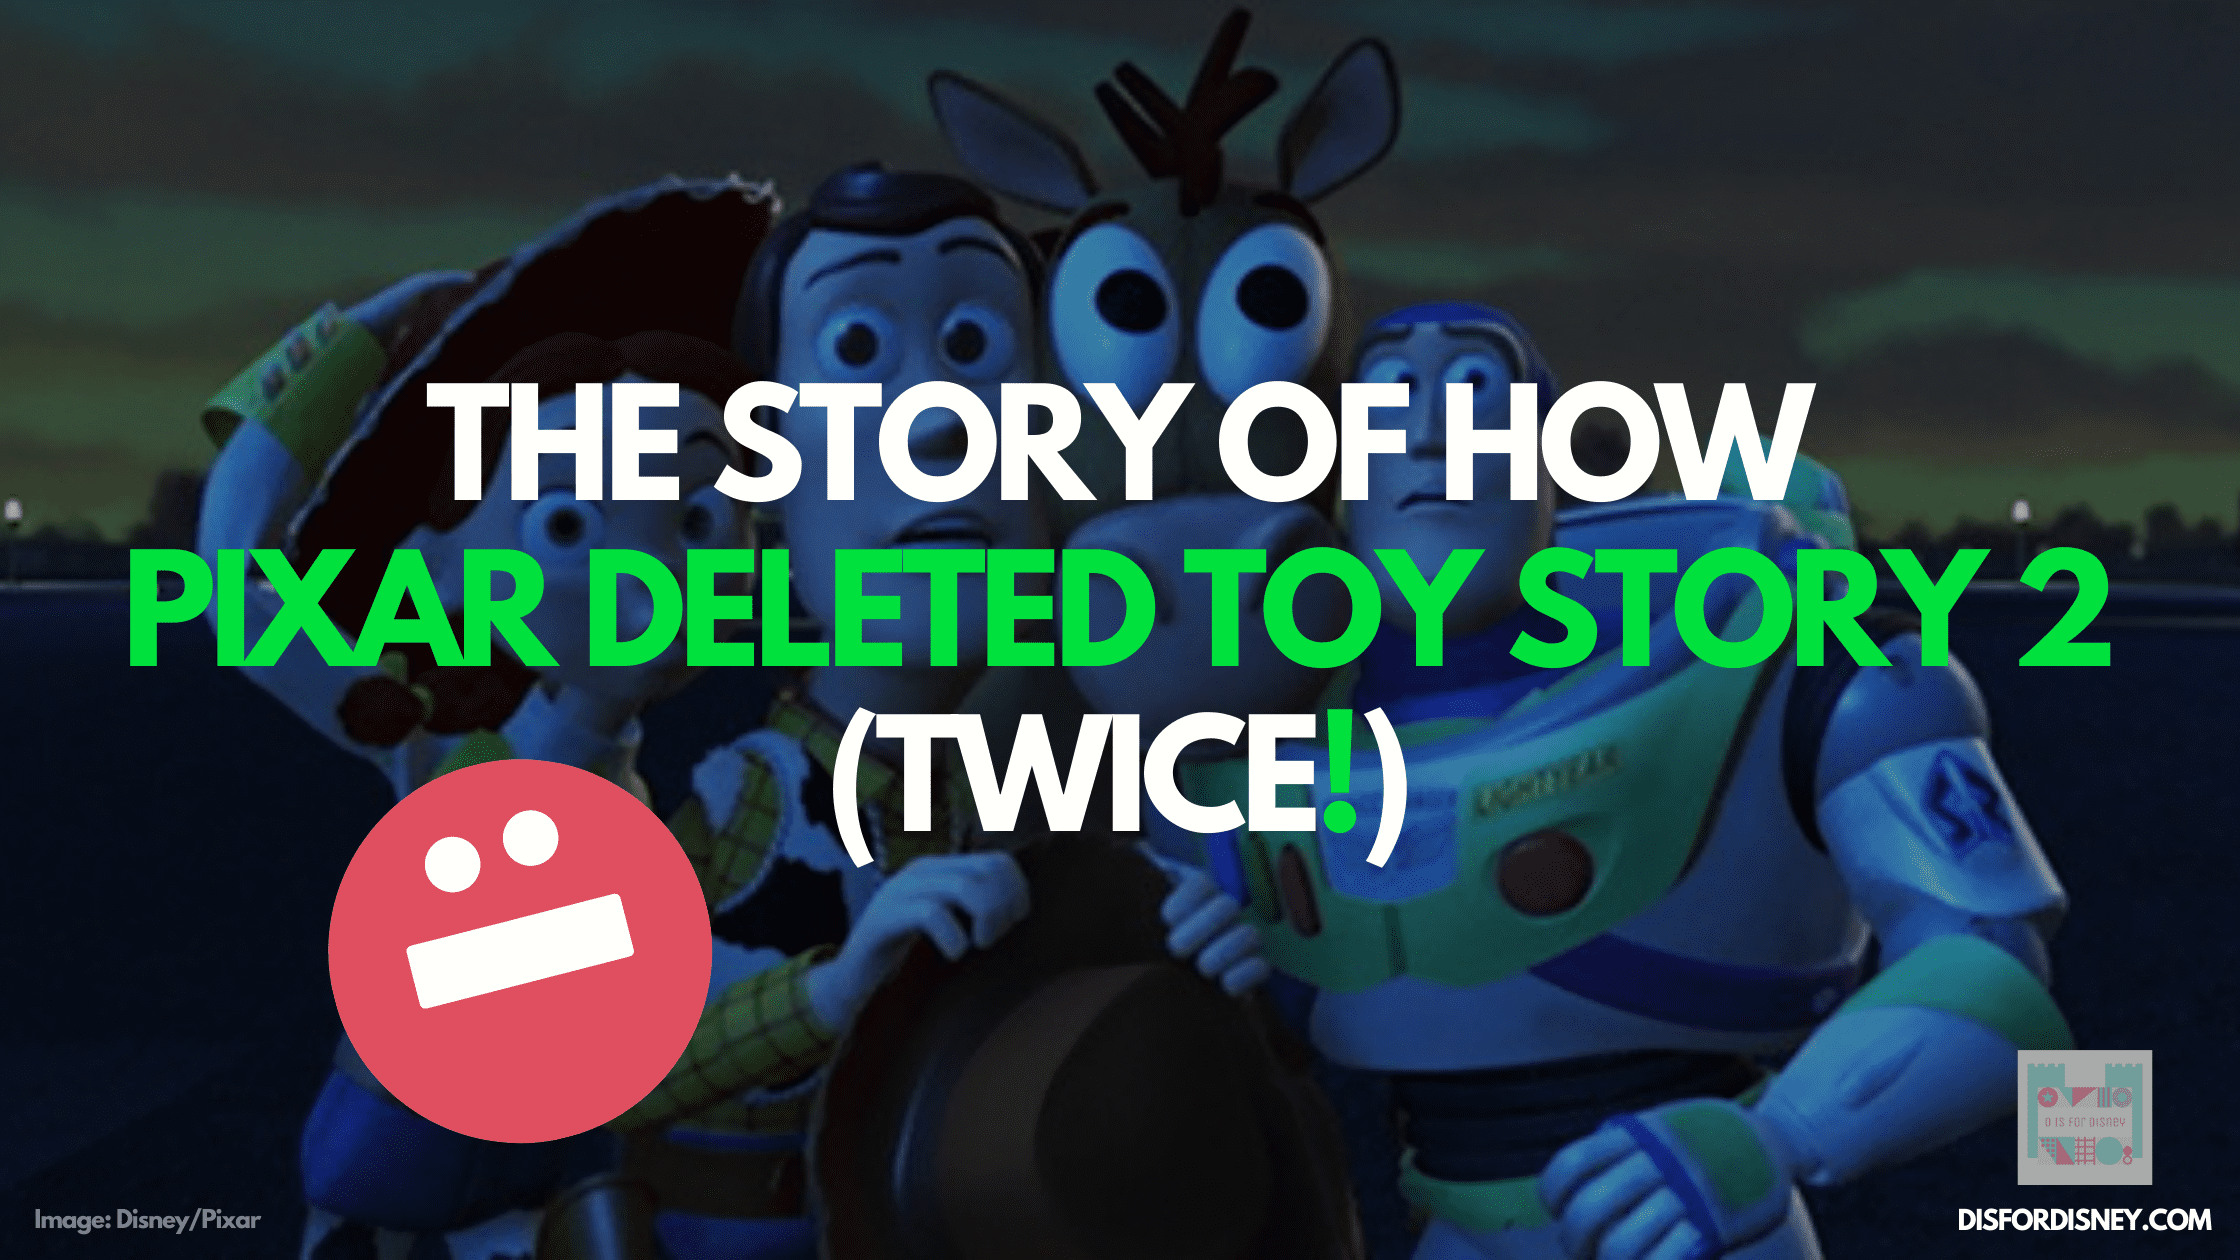 THE STORY OF HOW PIXAR DELETED TOY STORY 2 (TWICE!)